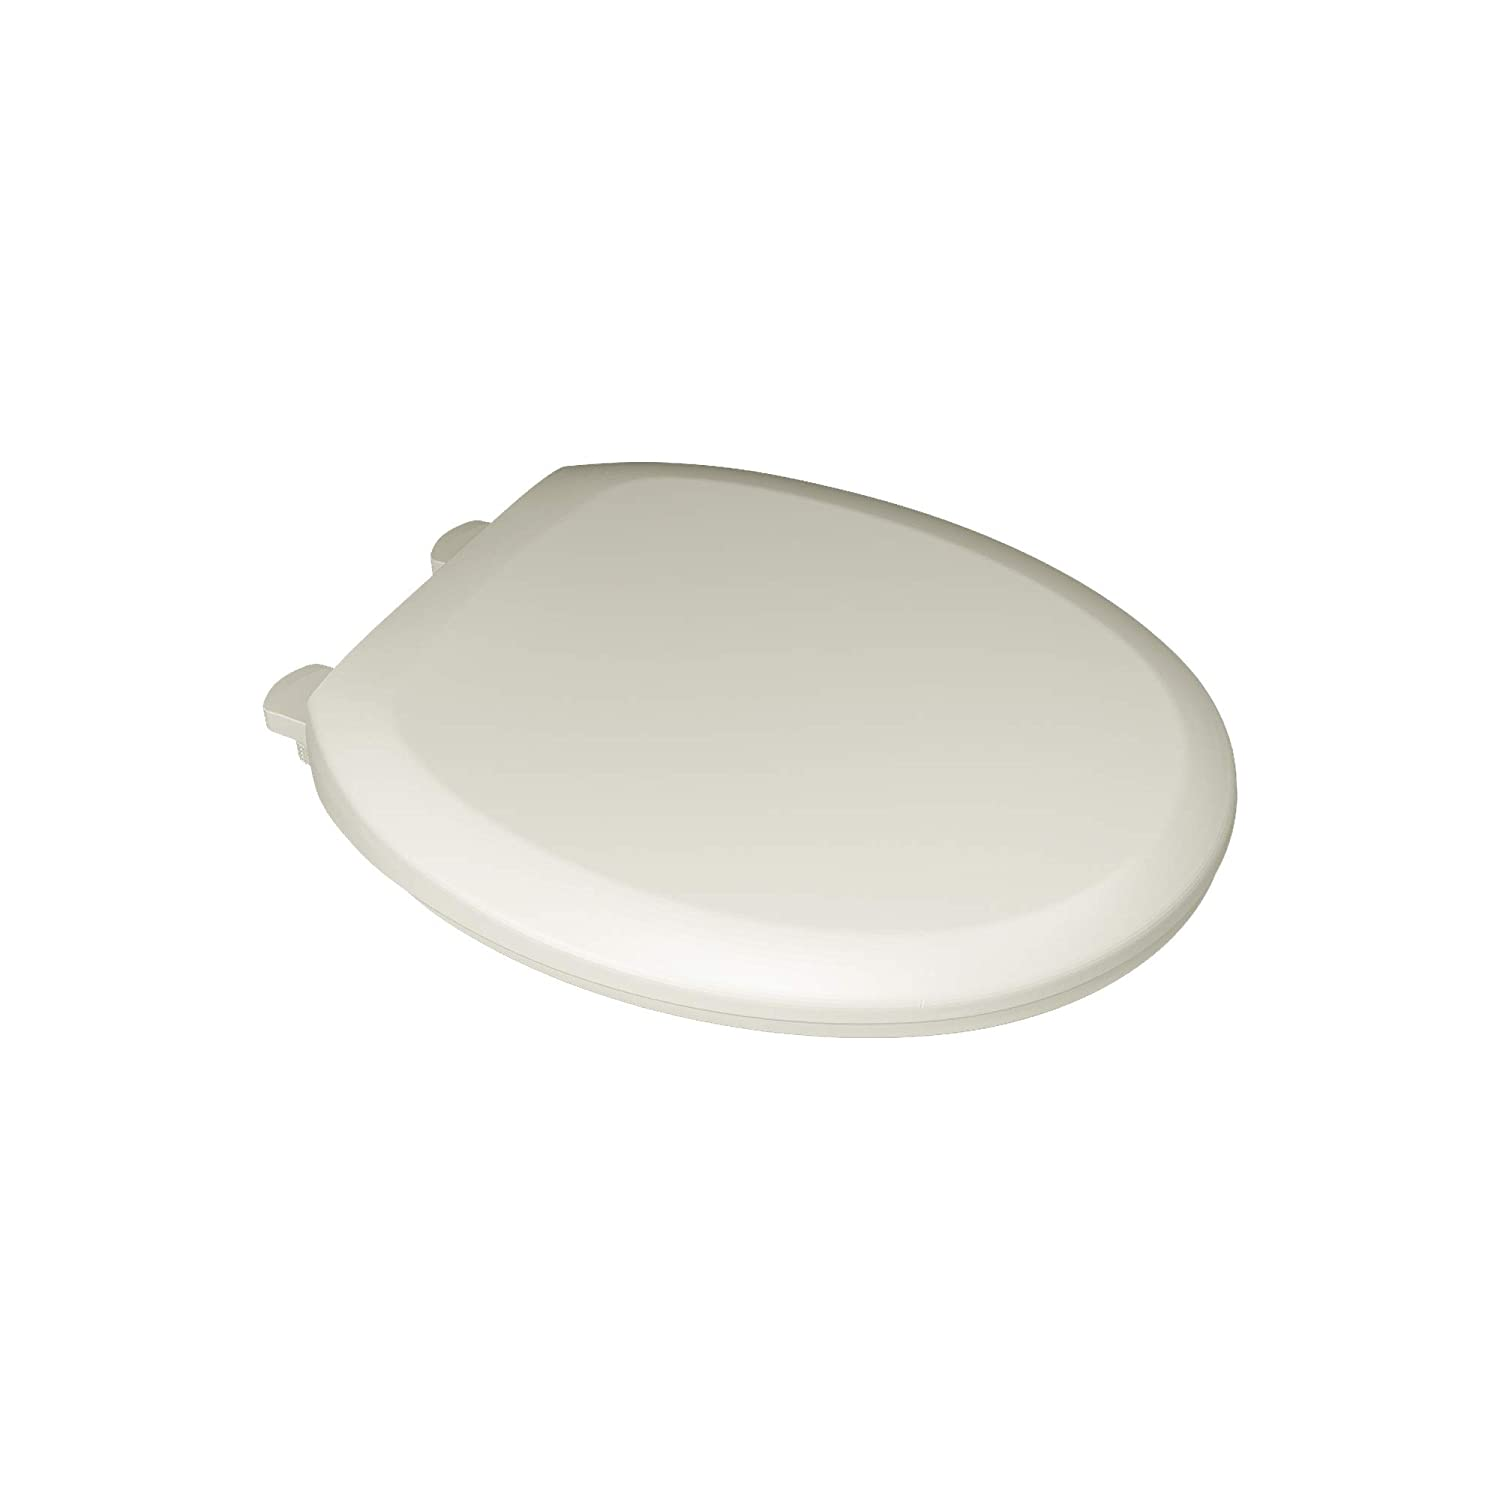 Bone ROUND American Standard 5321A65CT.020 Champion Slow-Close Elongated Toilet Seat, White